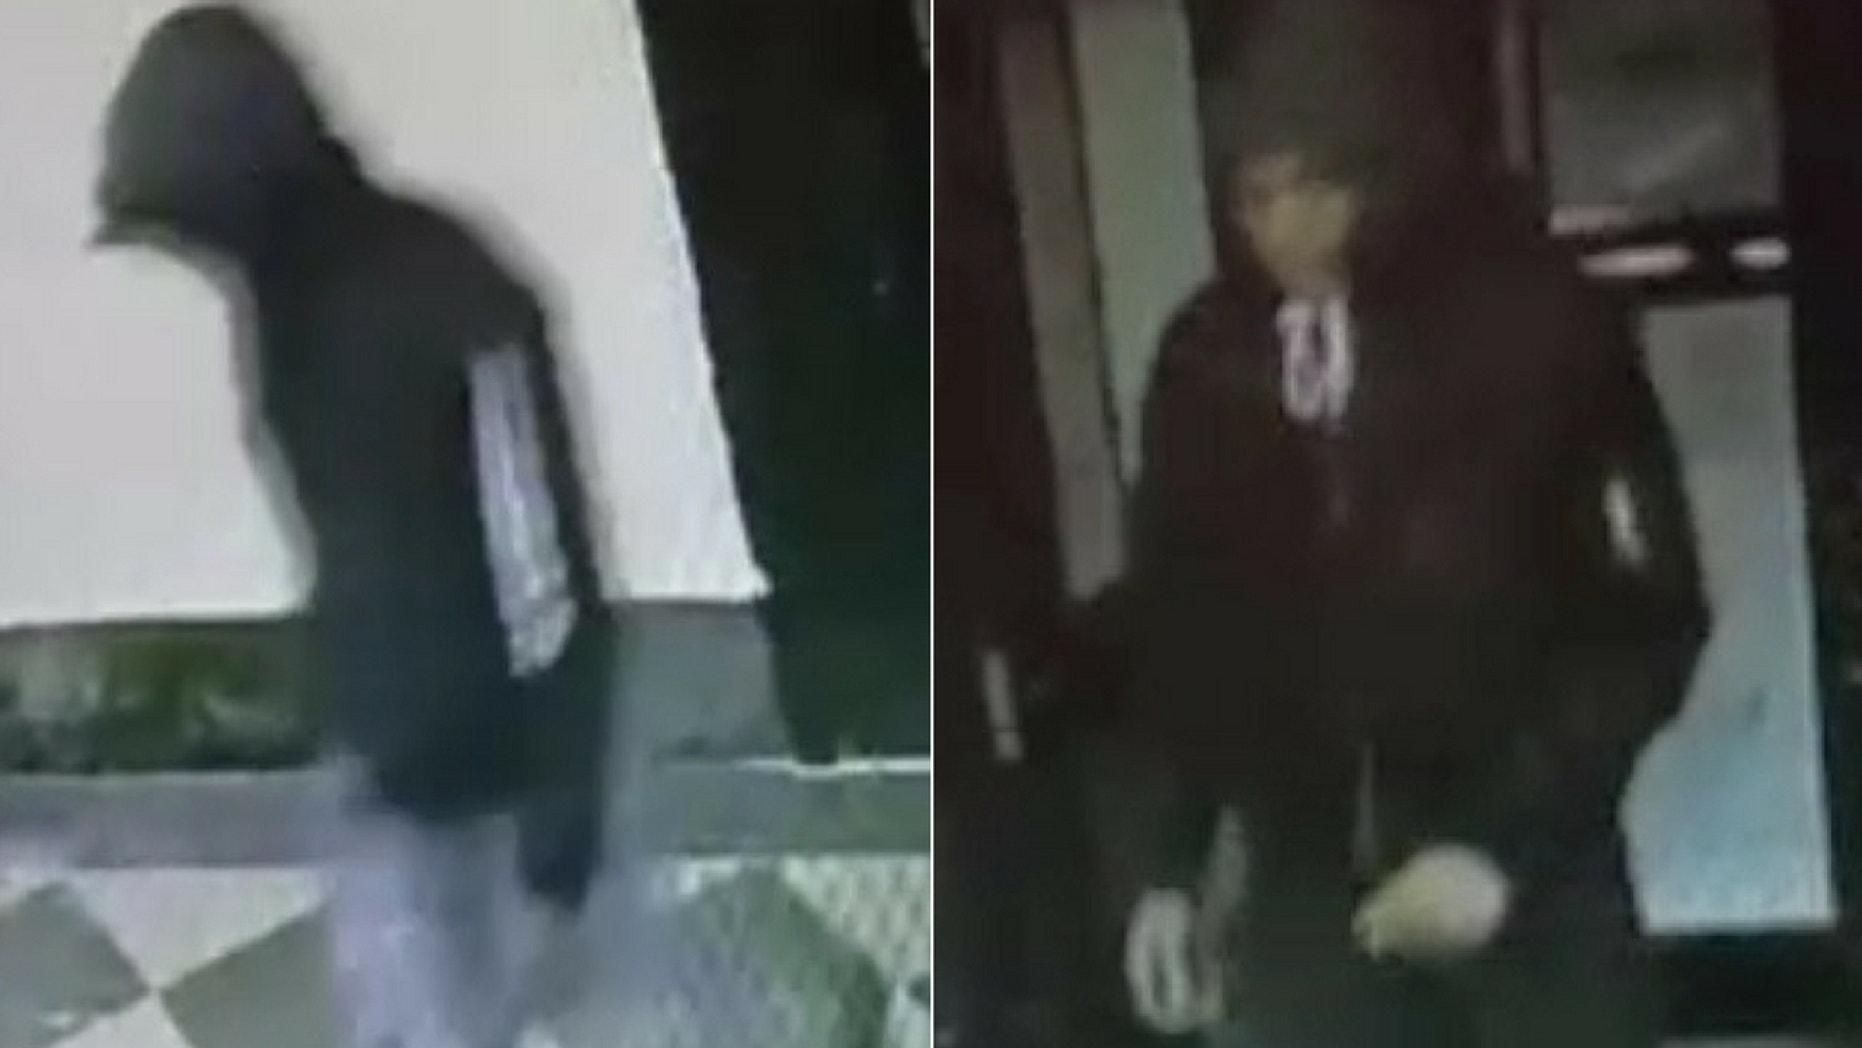 Police are searching for two teenage boys after a father was shot and killed in his Bronx home on Friday, police said.